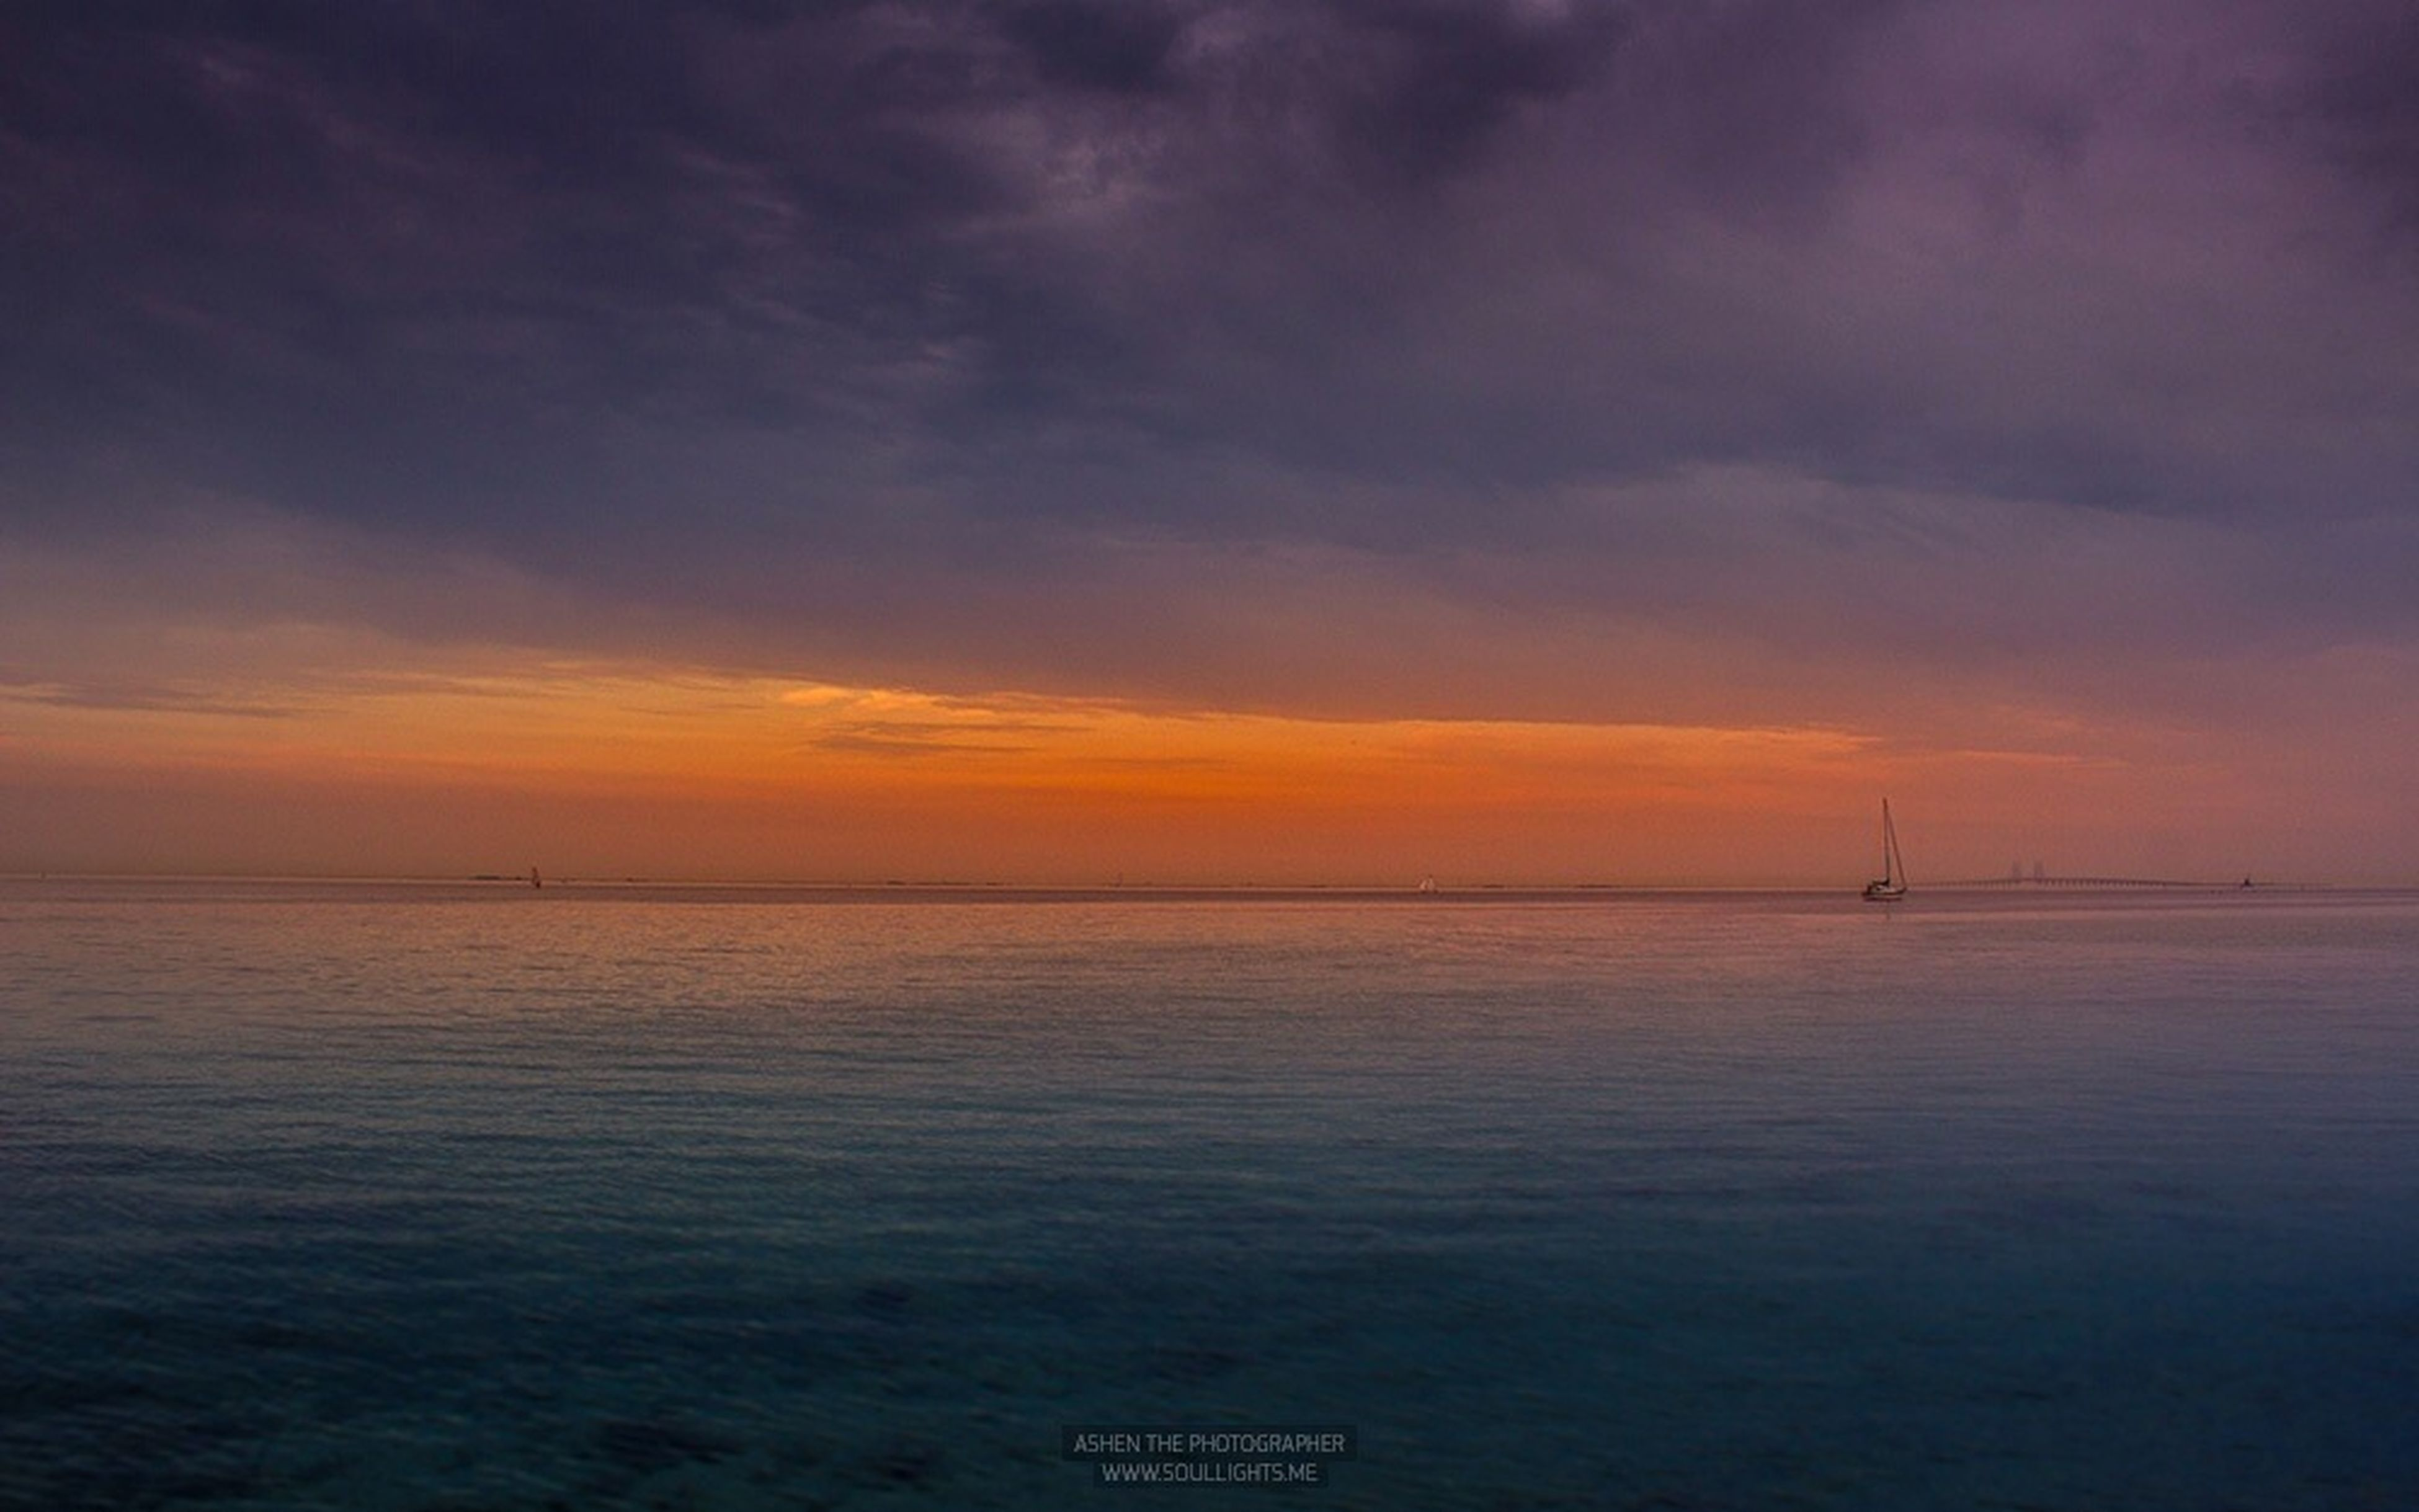 sea, water, sky, sunset, scenics, tranquility, tranquil scene, horizon over water, beauty in nature, nautical vessel, waterfront, cloud - sky, nature, transportation, boat, idyllic, rippled, cloud, cloudy, mode of transport